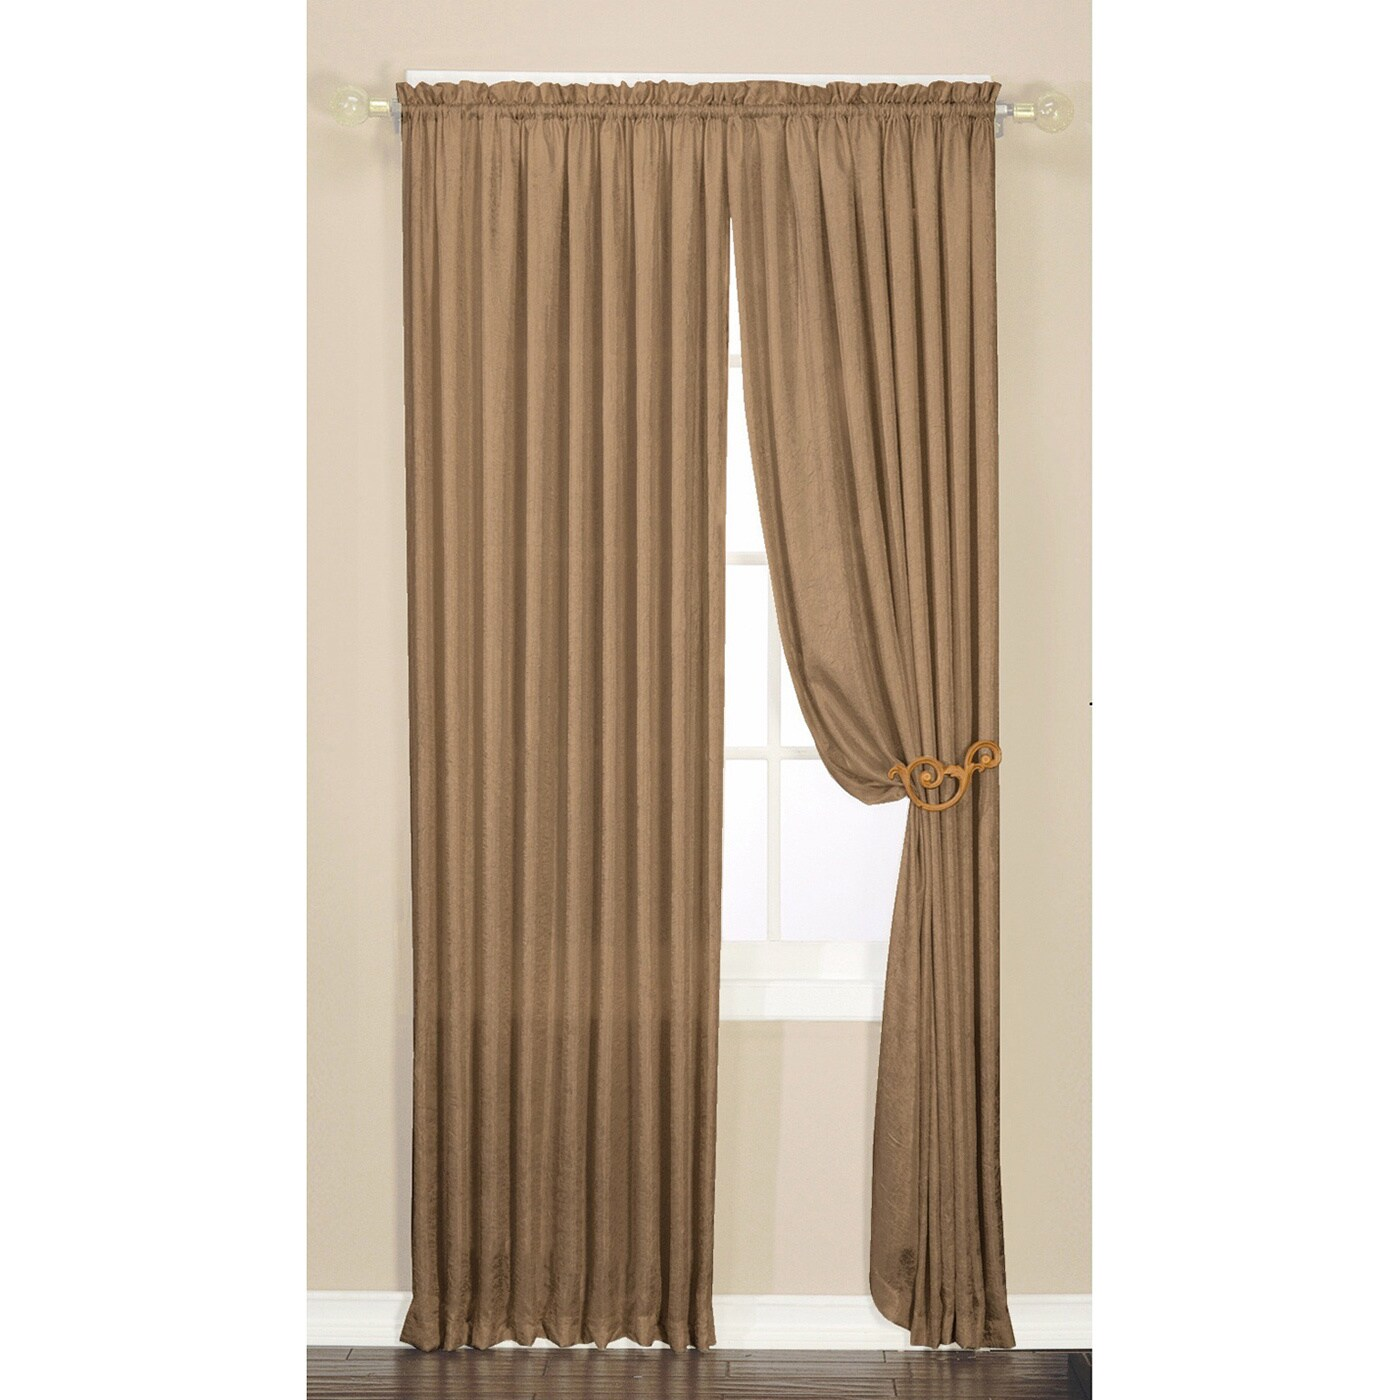 Curtains buy window curtains and drapes online on popscreen for Online curtains and drapes